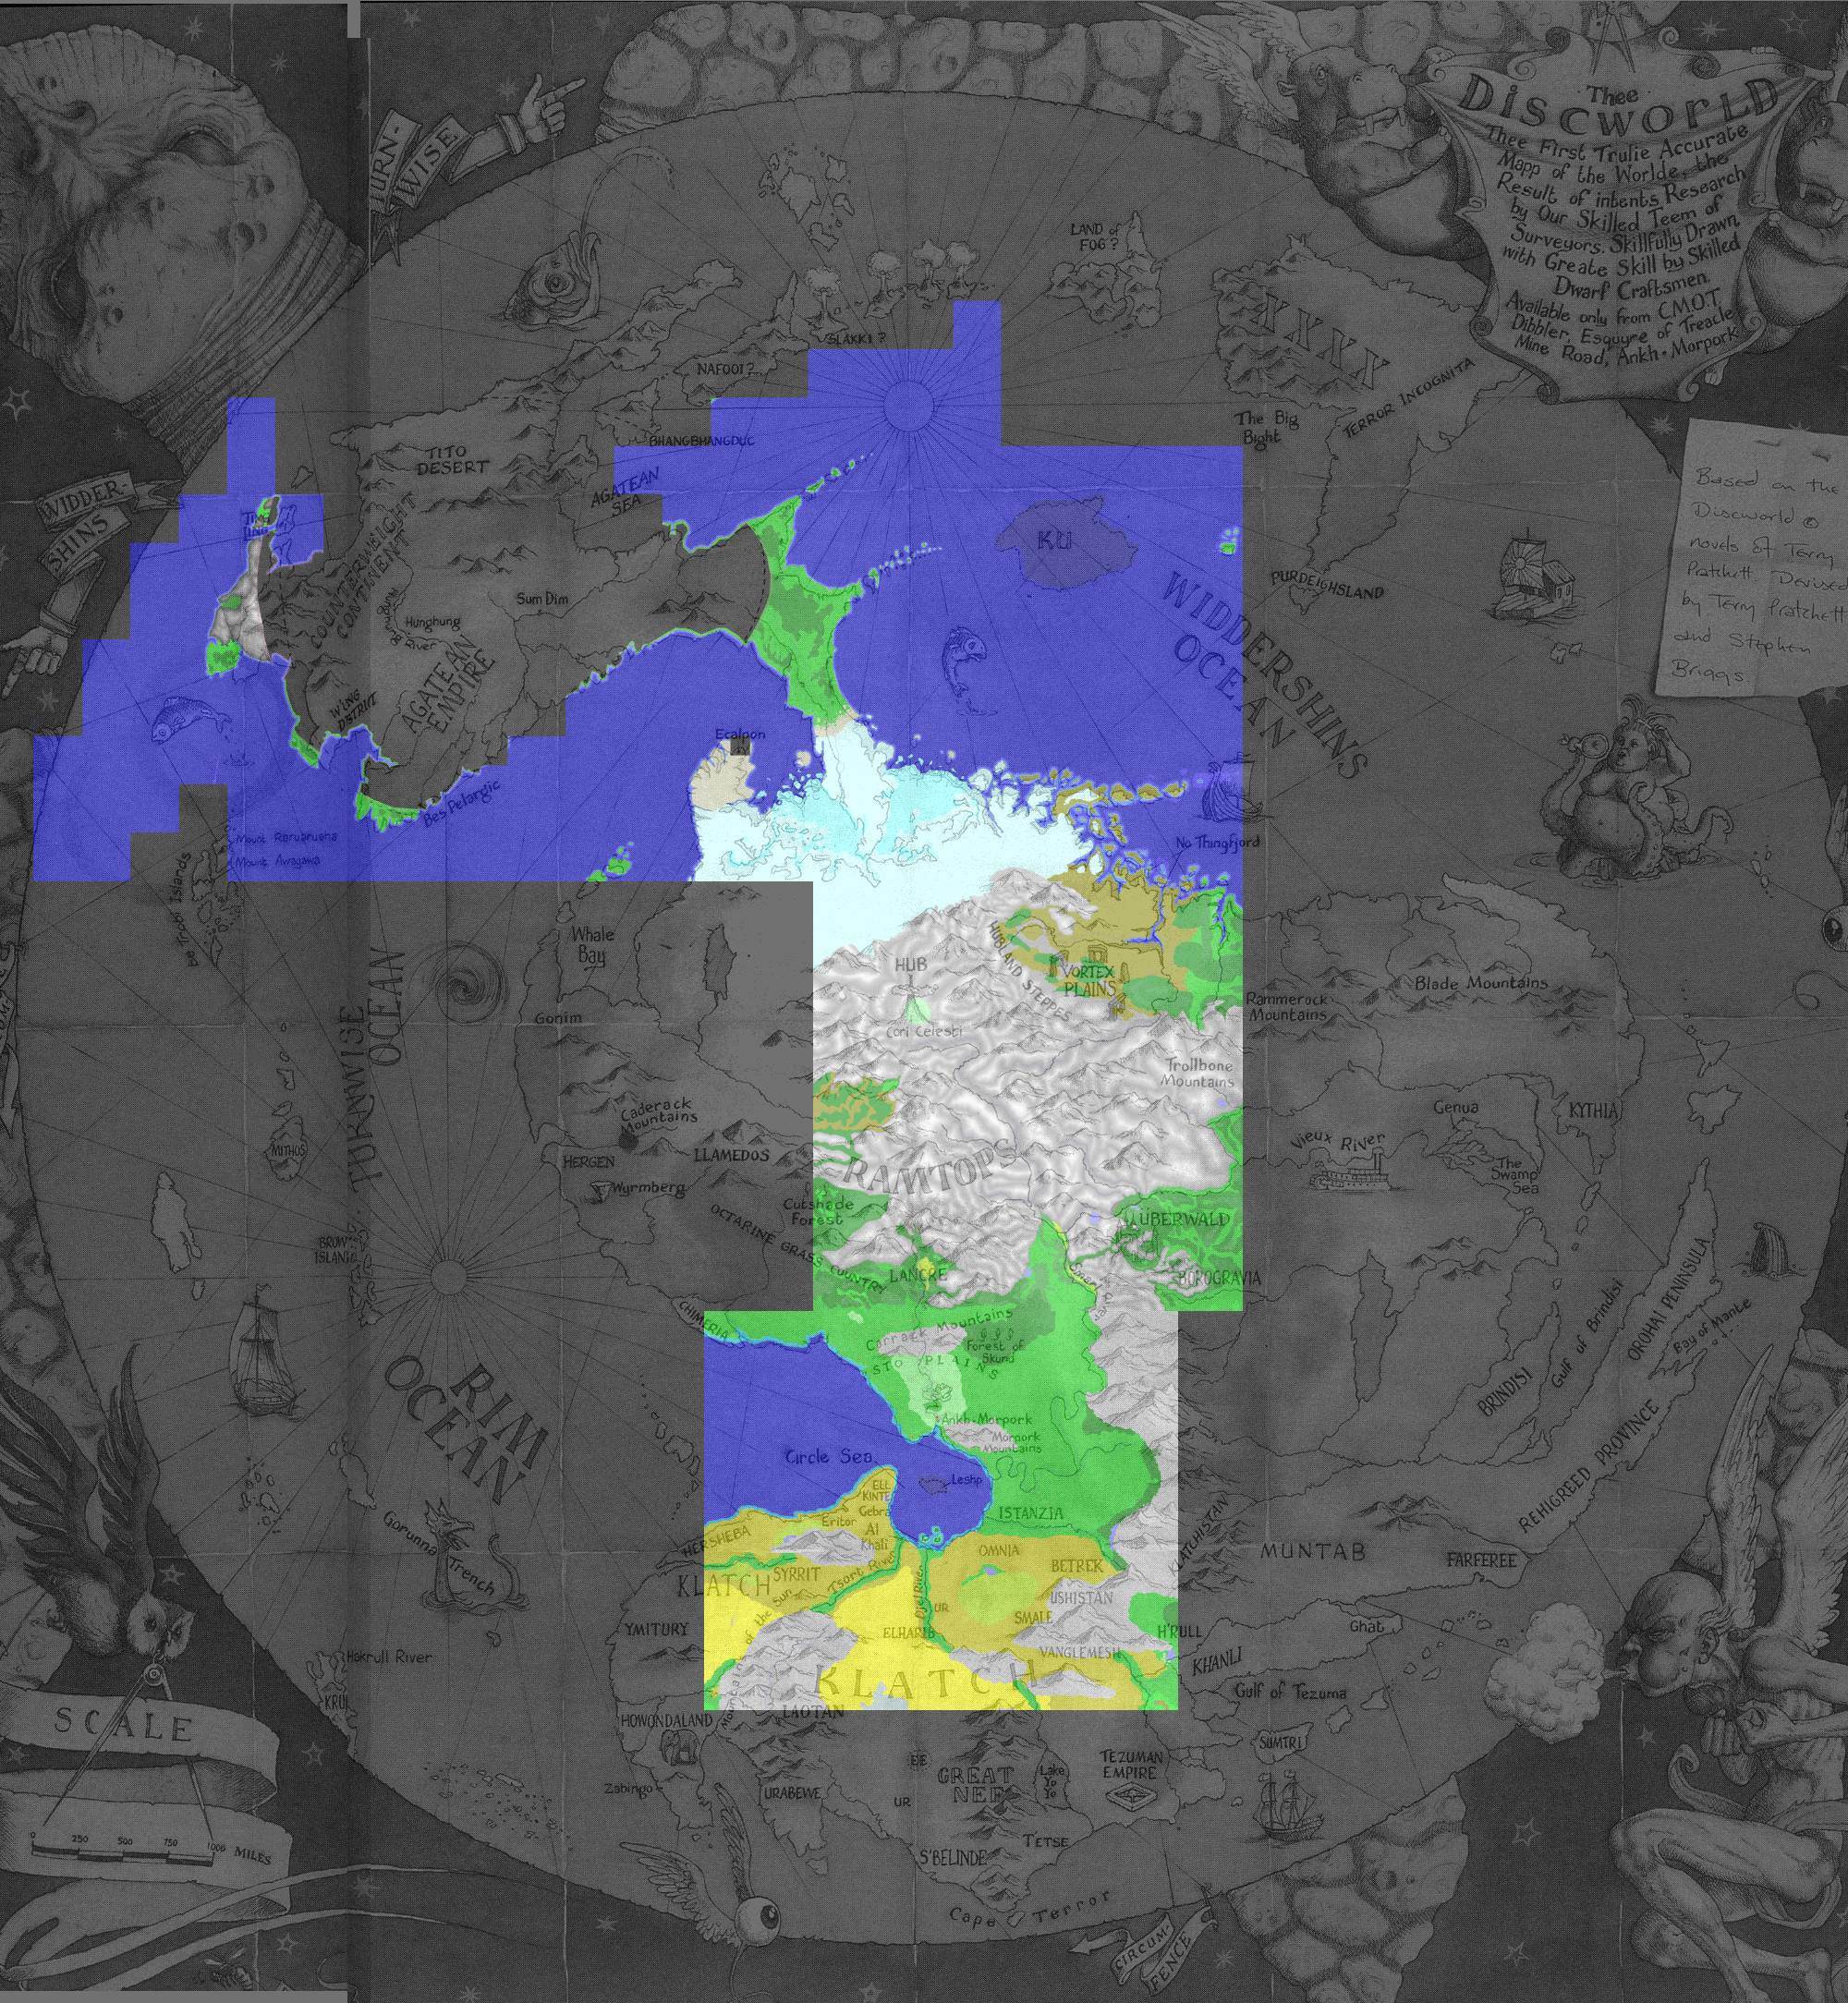 Kefka's Discworld MUD Maps on unseen university, thomas covenant map, the last apprentice map, night watch, theatre of cruelty, gor map, dungeons and dragons map, thief of time, septimus heap map, wardstone chronicles map, guardians of ga'hoole map, alvin maker map, the dark tower map, the colour of magic, monstrous regiment, watership down map, artemis fowl map, moving pictures, the sword of truth map, zones of thought map, gulliver's travels map, star wars map, discworld diary, charlie and the chocolate factory map, soul music, the art of discworld, doctor who map, legend of dragoon map, lords and ladies, marvel map, inheritance cycle map, the truth, the streets of ankh-morpork,